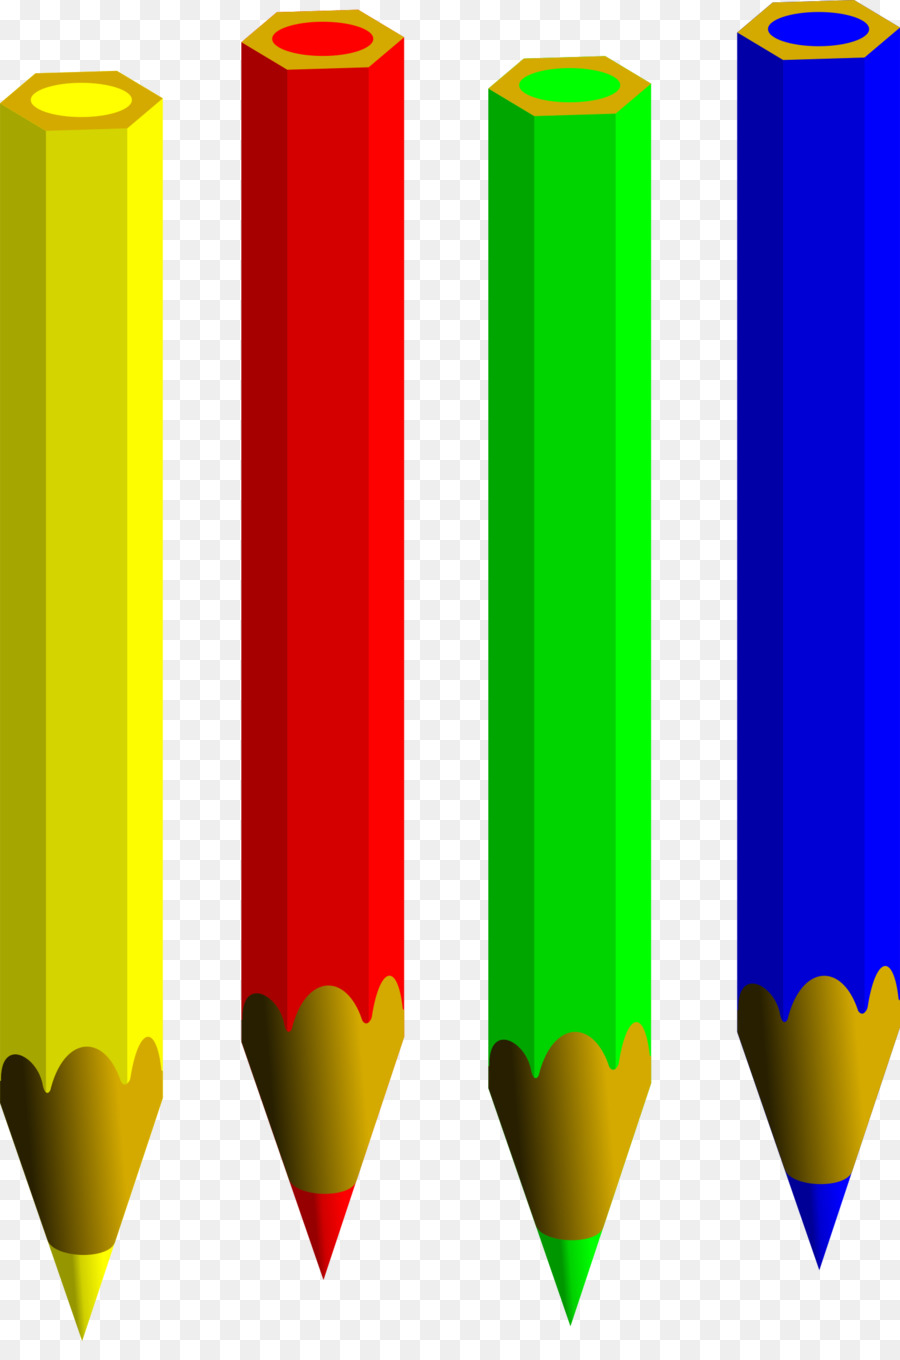 Clipart pencil four. Cartoon crayon transparent clip